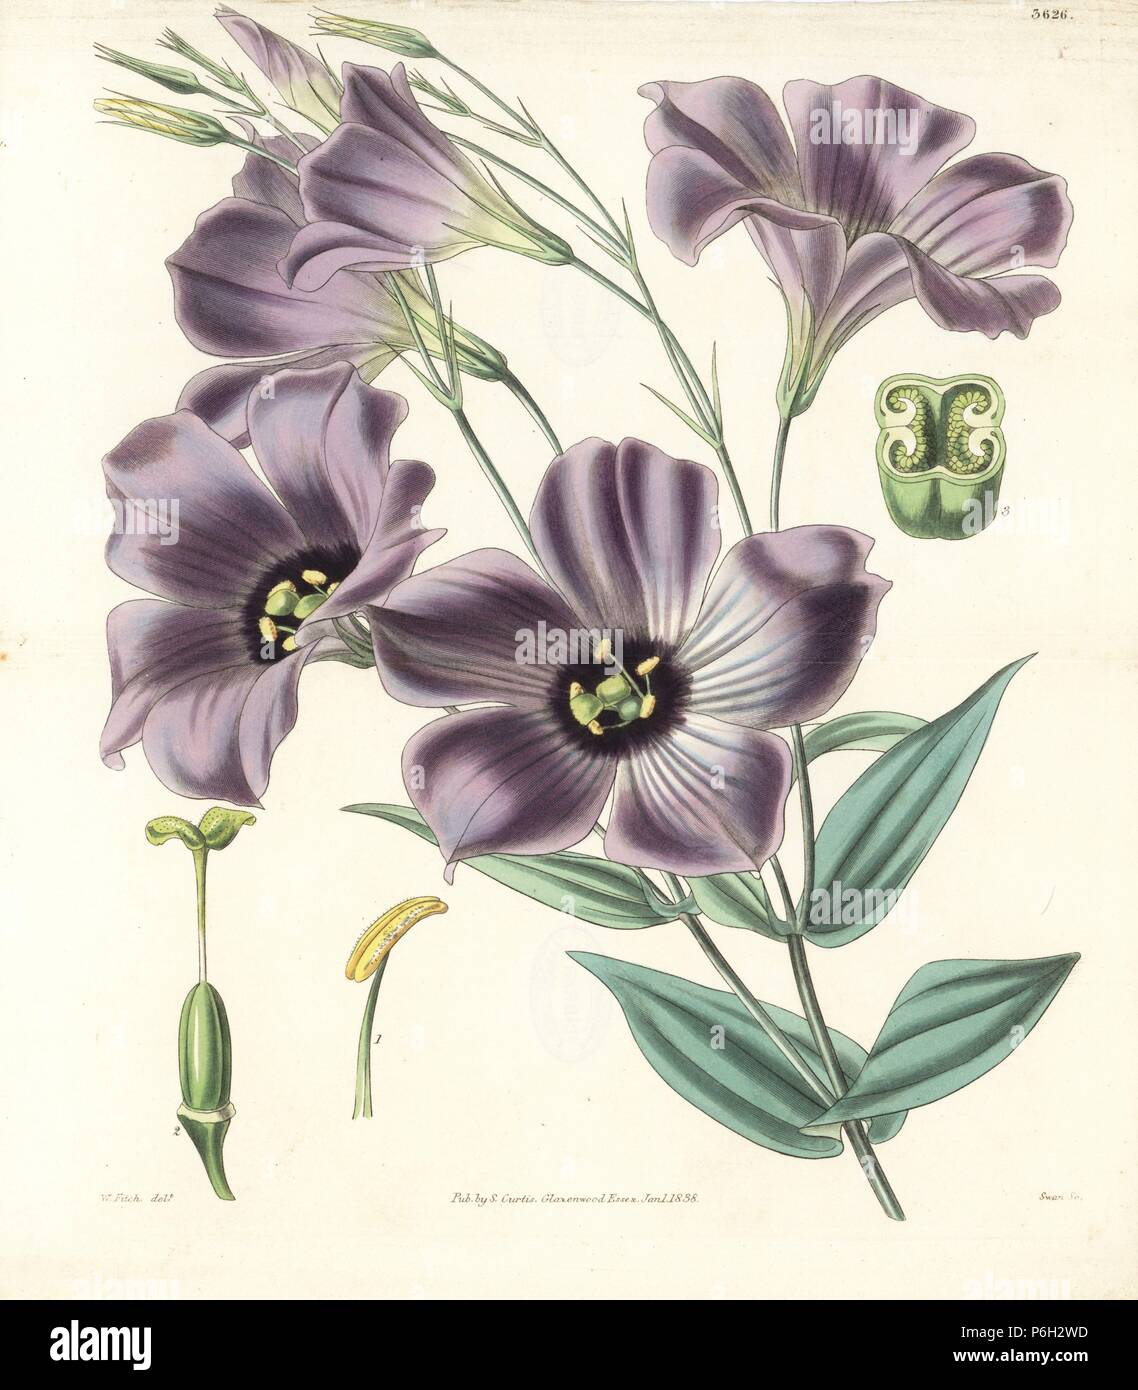 Texas bluebells, Eustoma grandiflorum (Duke of Bedford's lisianthus, Lisianthus russellianus). Handcoloured copperplate engraving after a botanical illustration by Walter Fitch from William Jackson Hooker's Botanical Magazine, 1838. - Stock Image